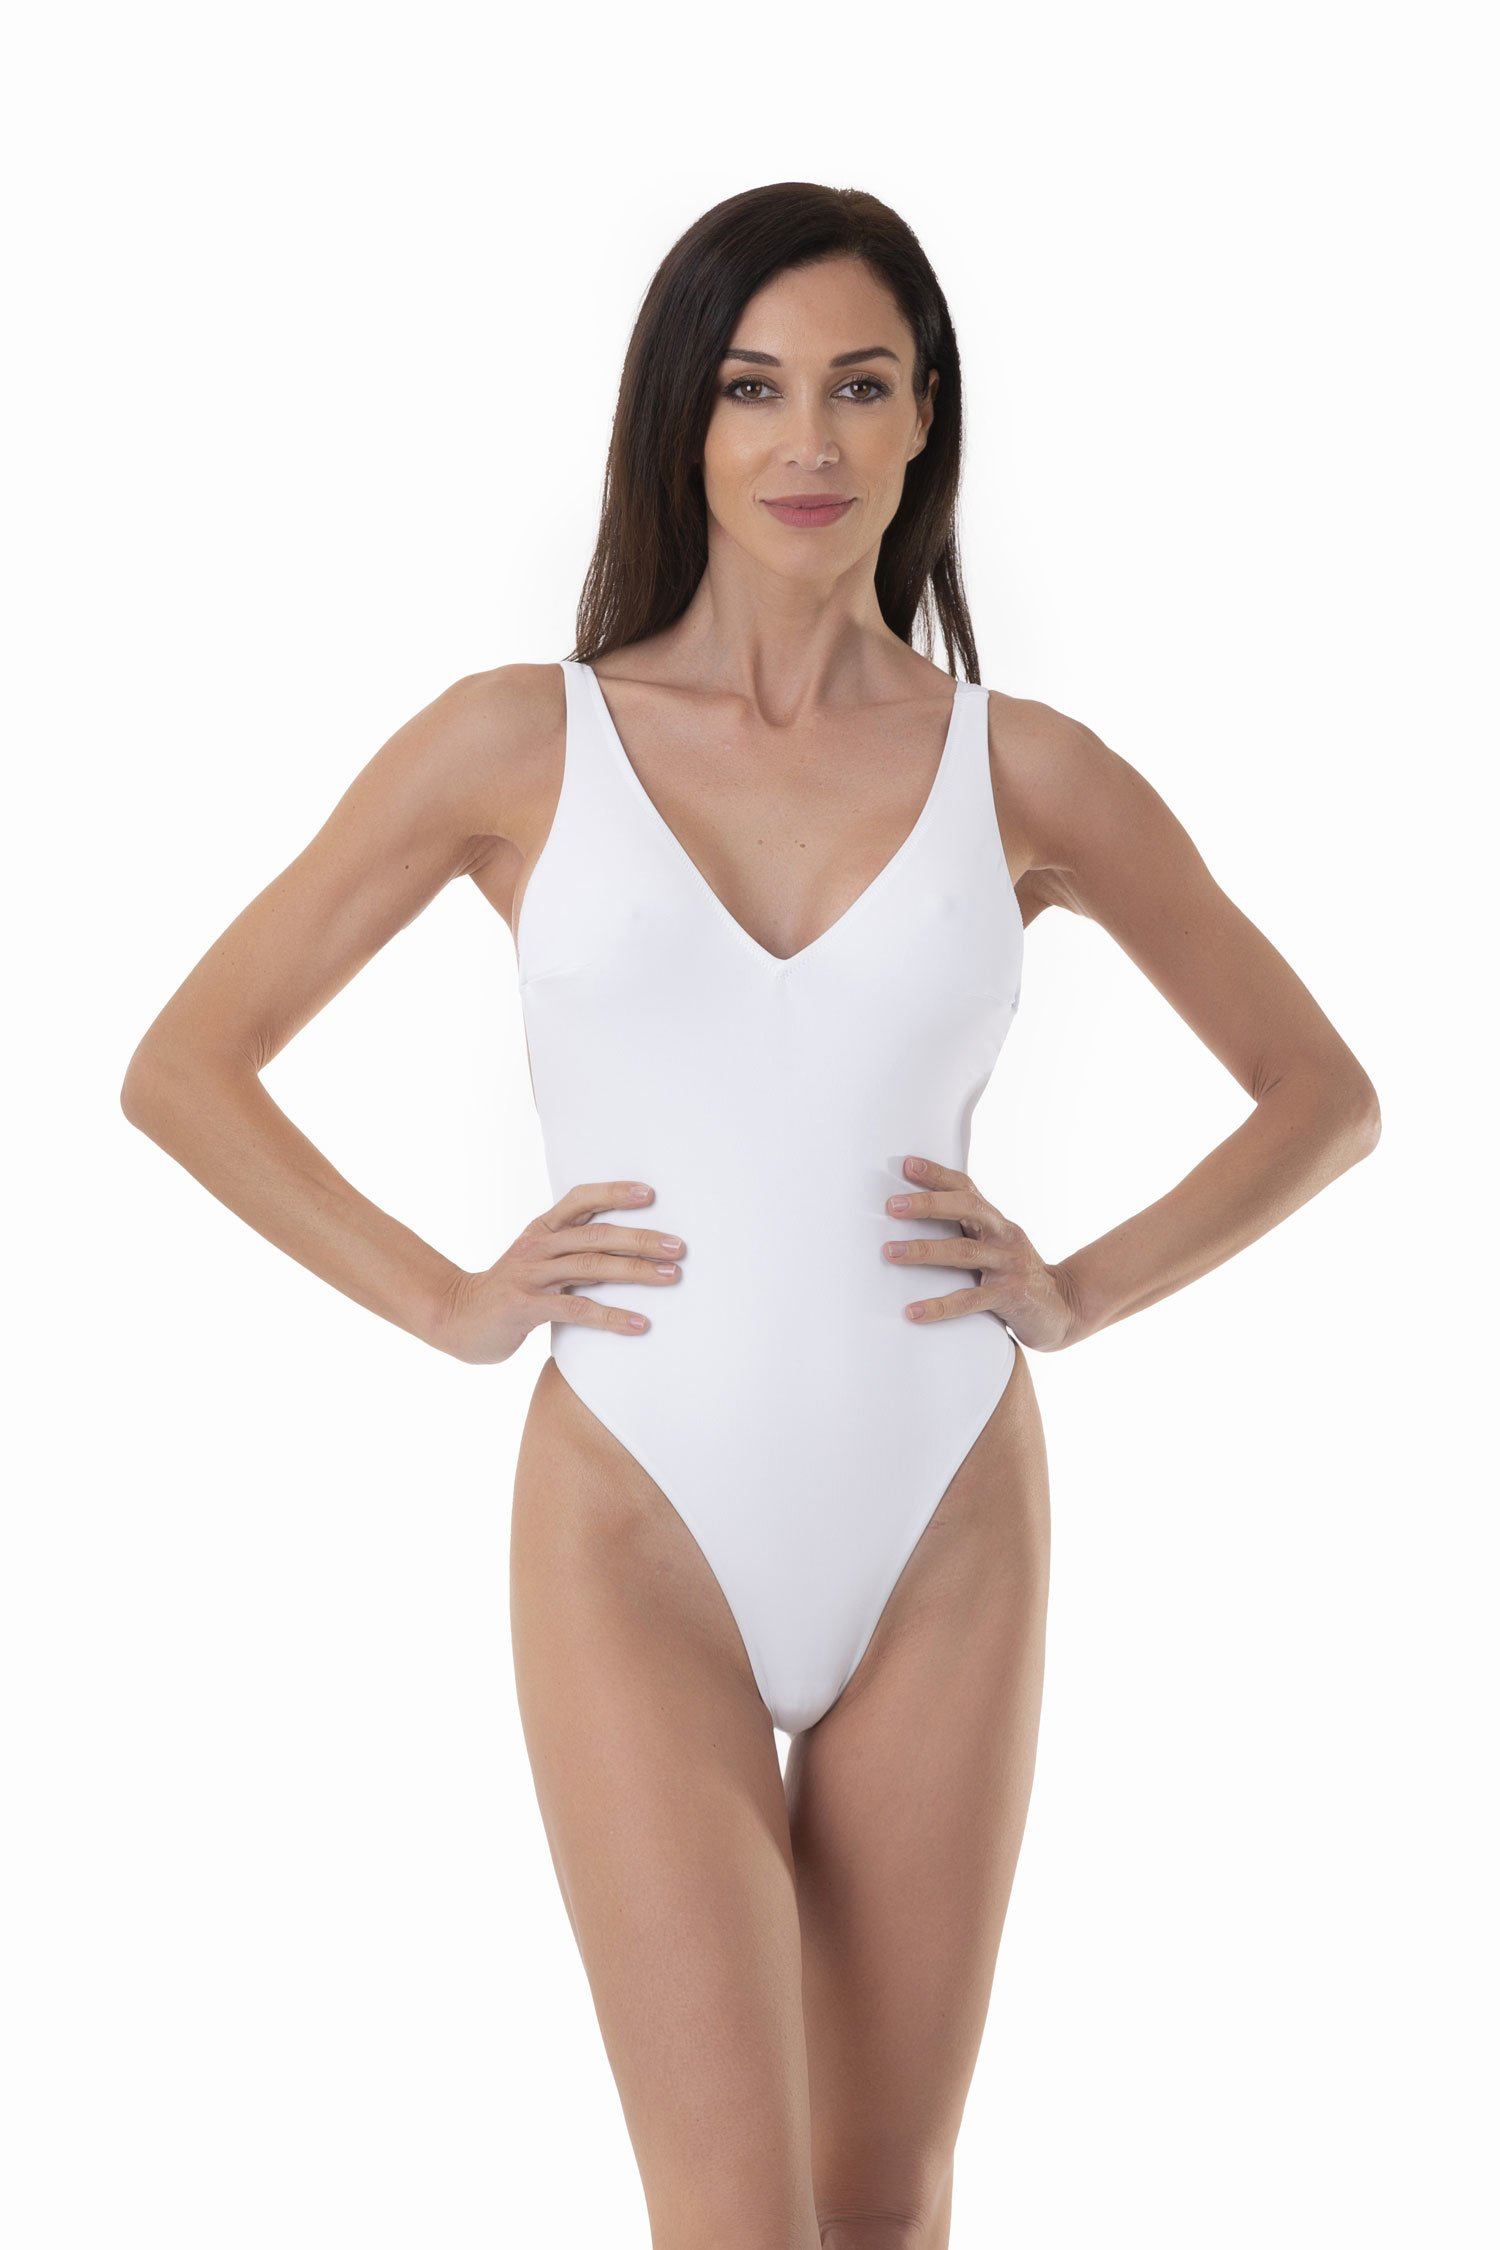 SOLID COLOUR ONE-PIECE WITH DEEP V-NECKLINE - Bianco White 001